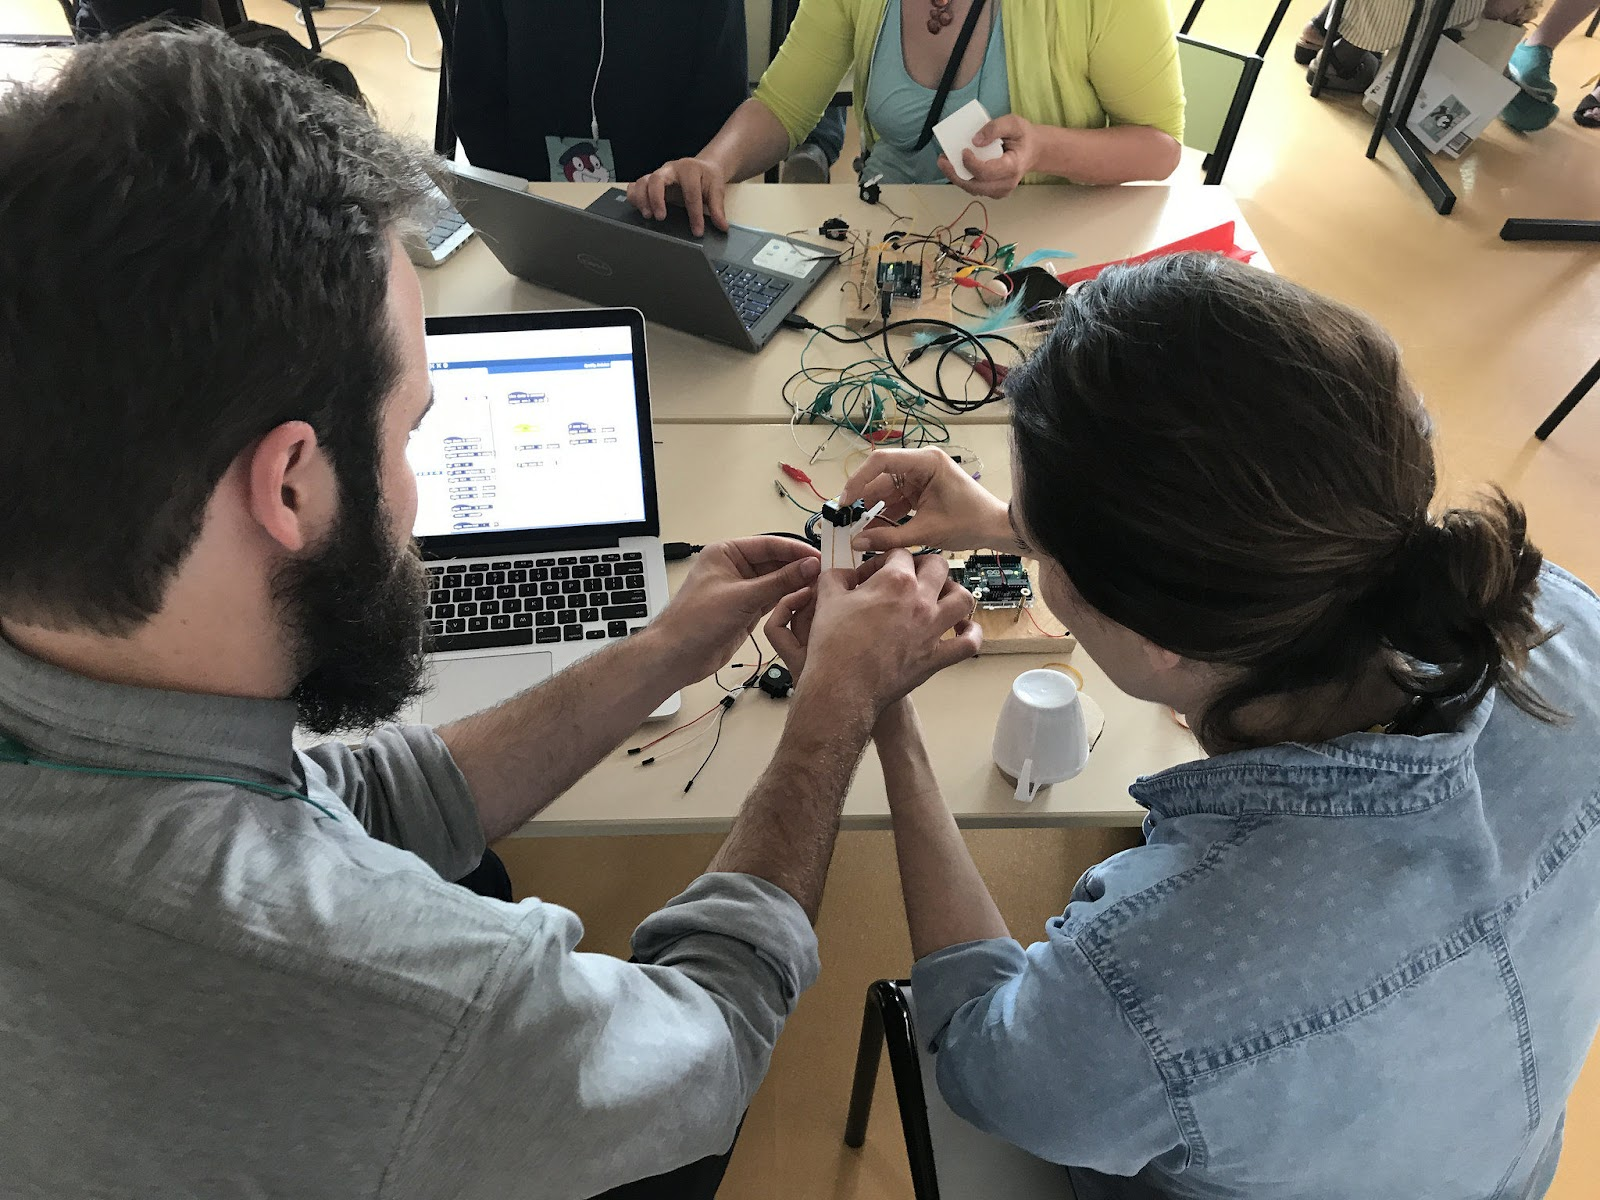 educators tinker with electronics